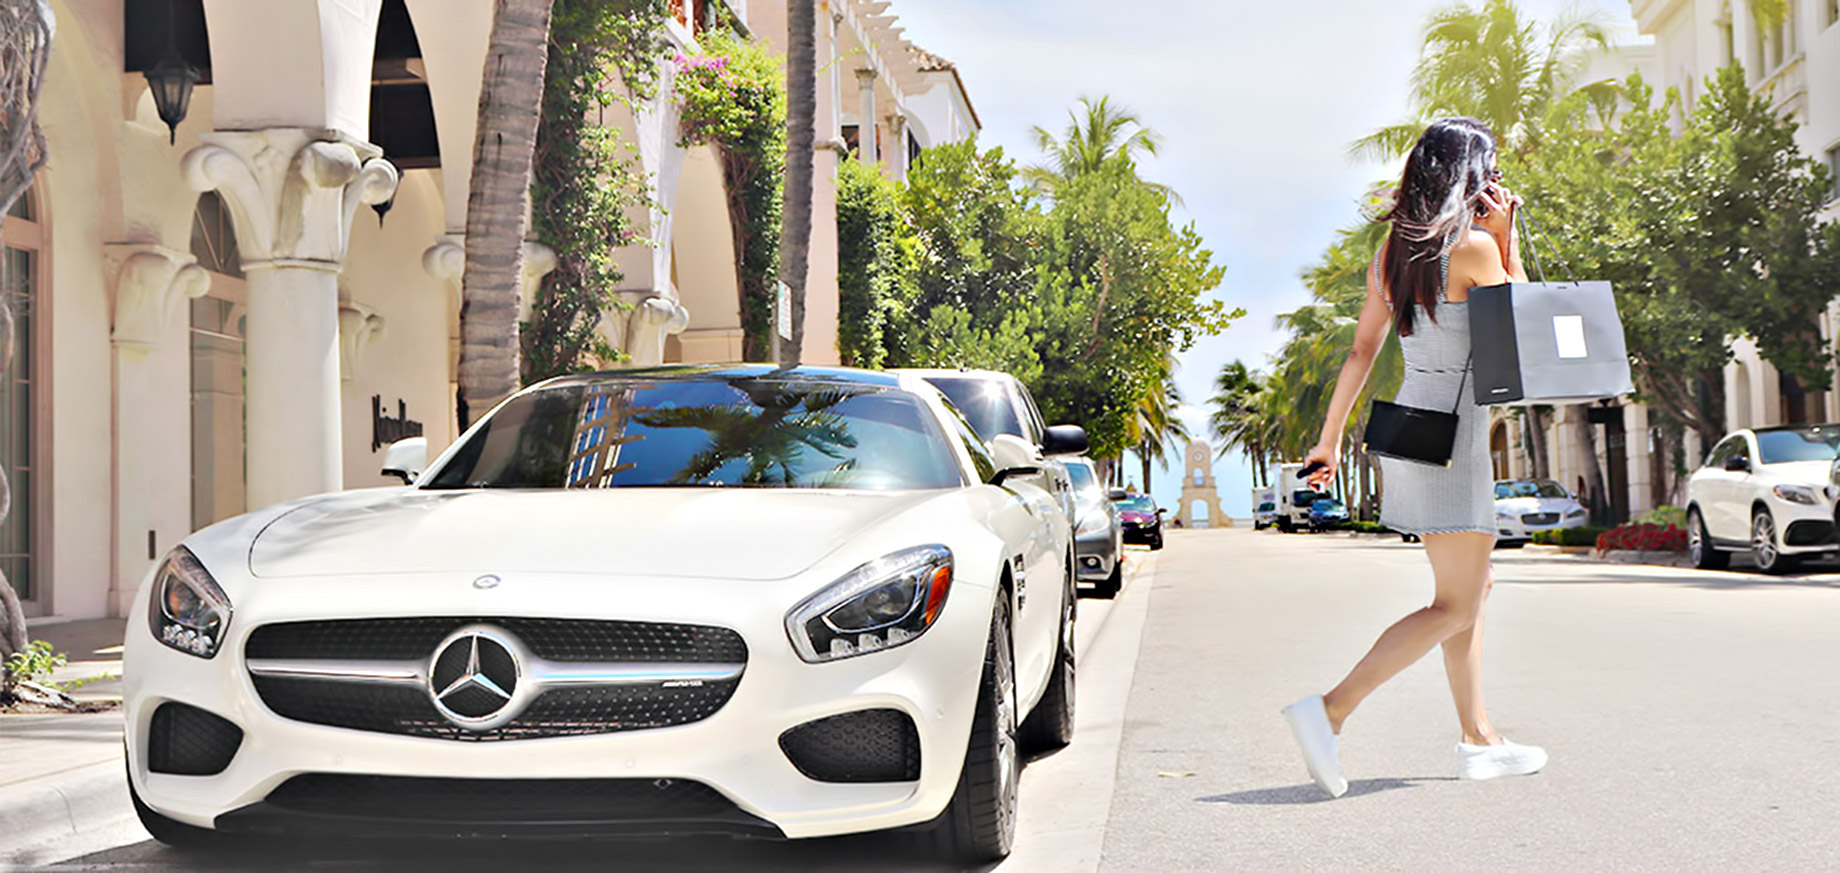 Amazing Shopping - Florida Luxury Real Estate - The Appeal of a Second Home in Palm Beach